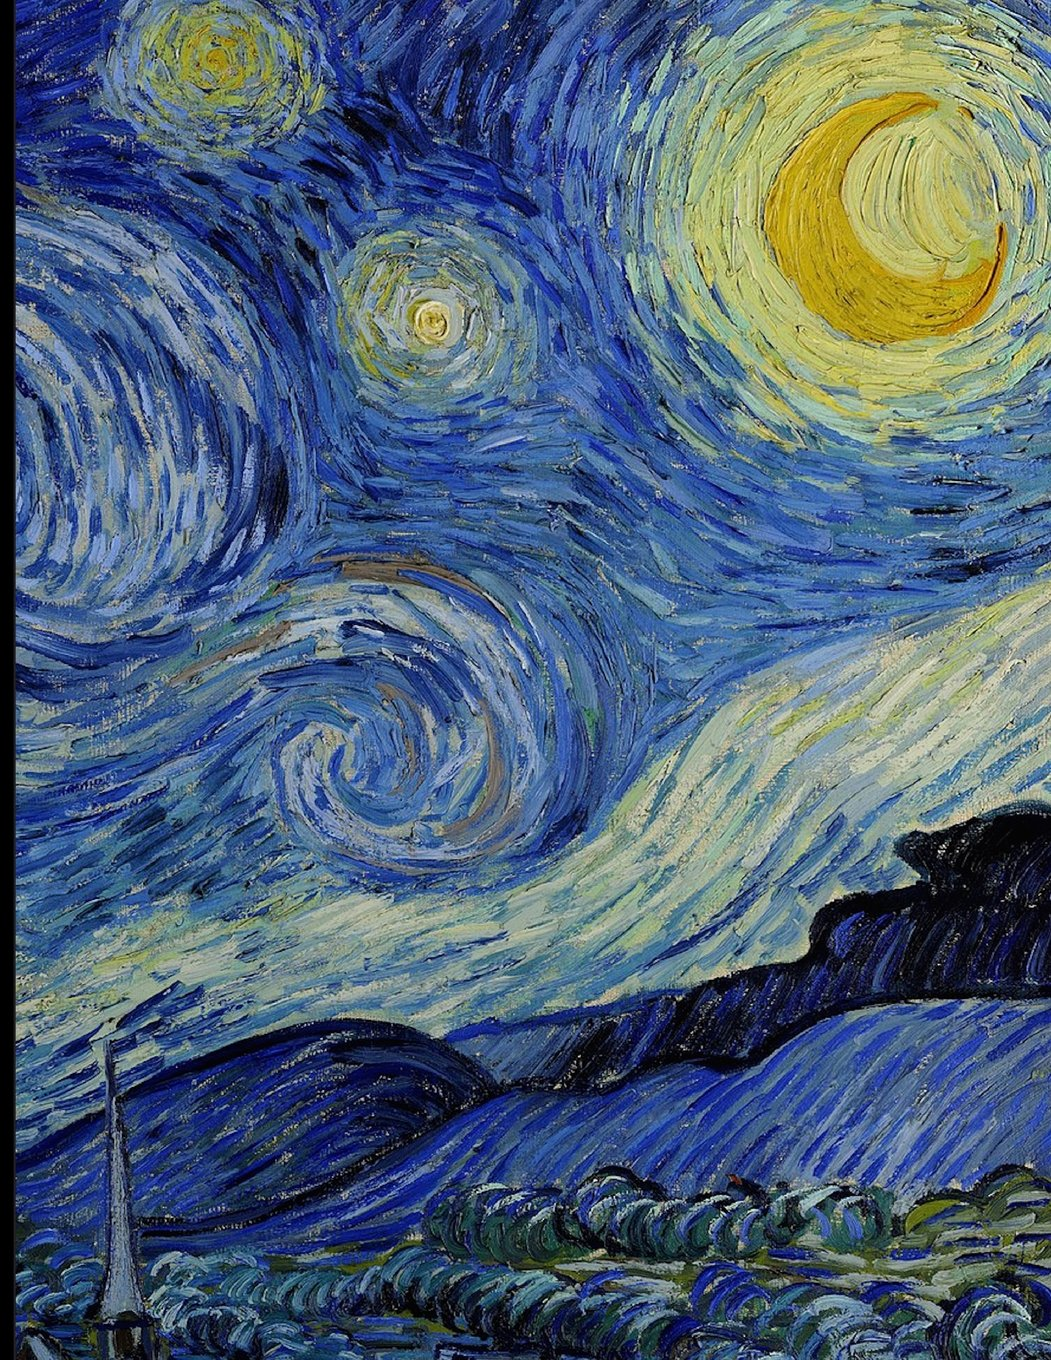 Notebook: Large Journal with Half Blank, Half College Ruled Paper, with Van Gogh's Starry Night; 8.5x11 Notebook, Use as a Journal or Diary or as a Gift for Men, Women, Boys, or Girls ebook